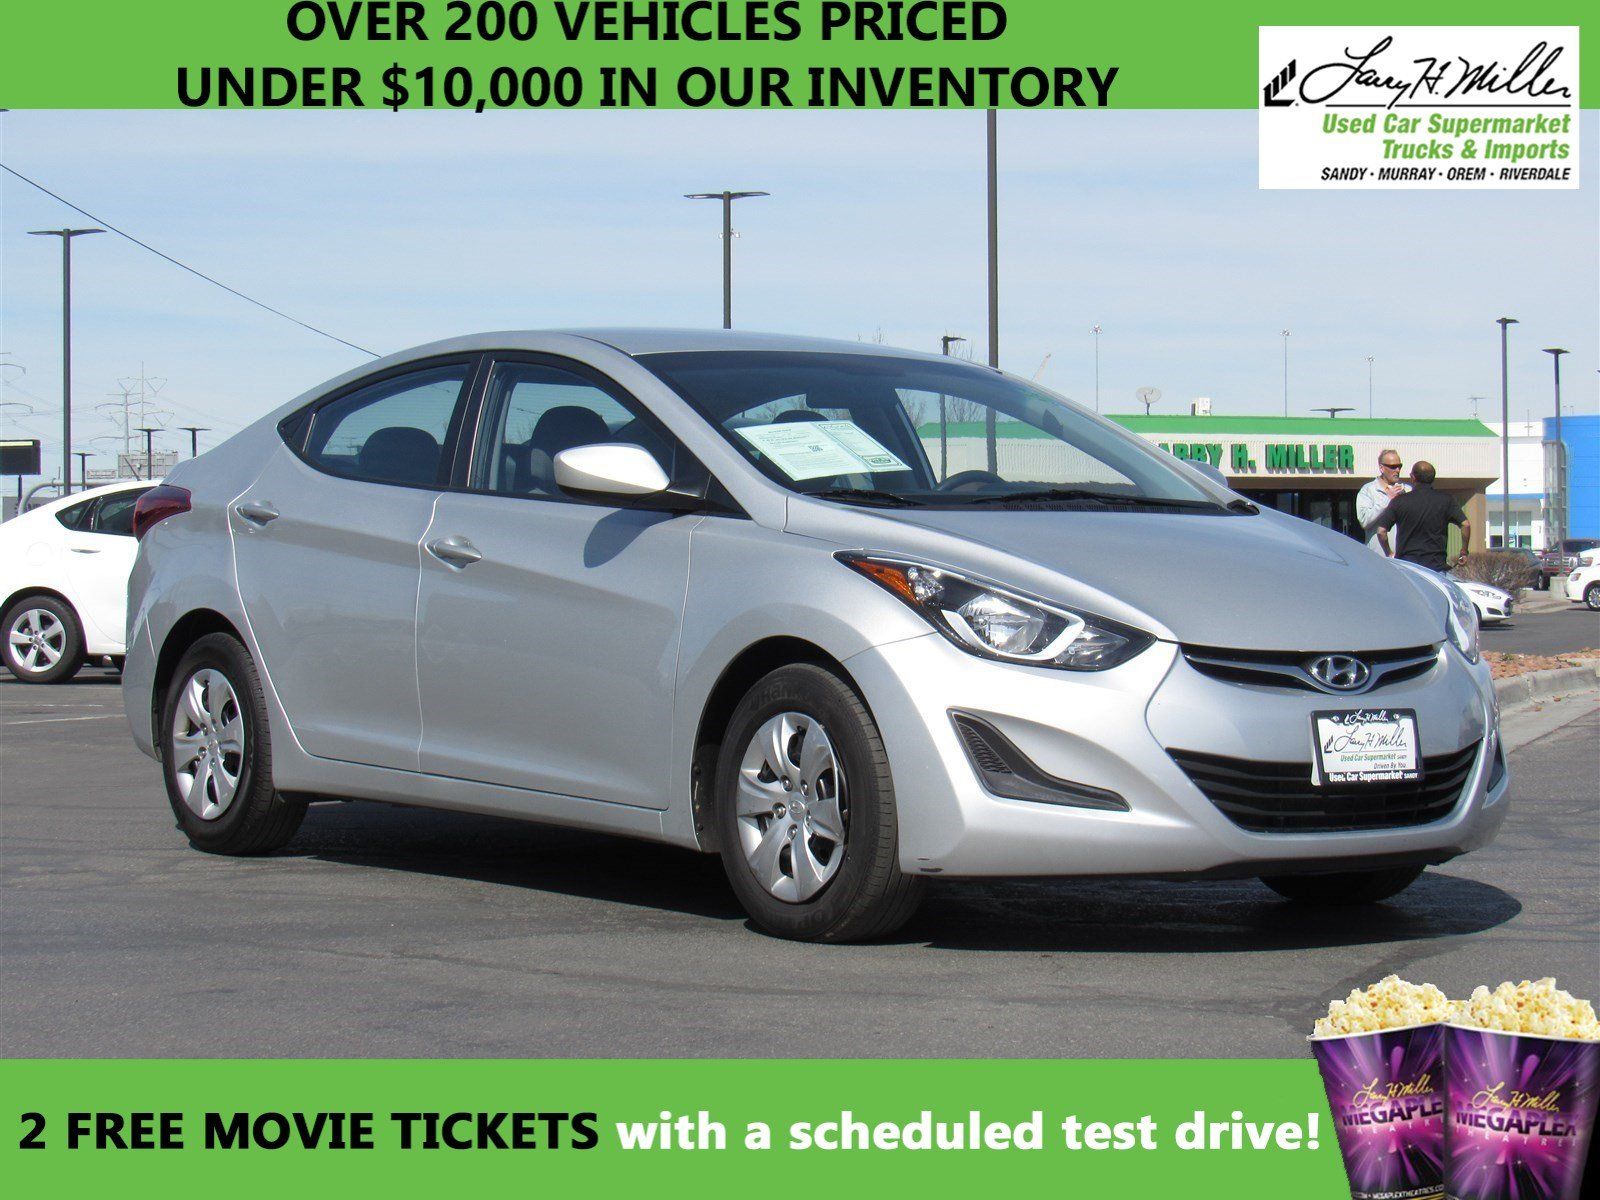 Buy Used Hyundais in Sandy